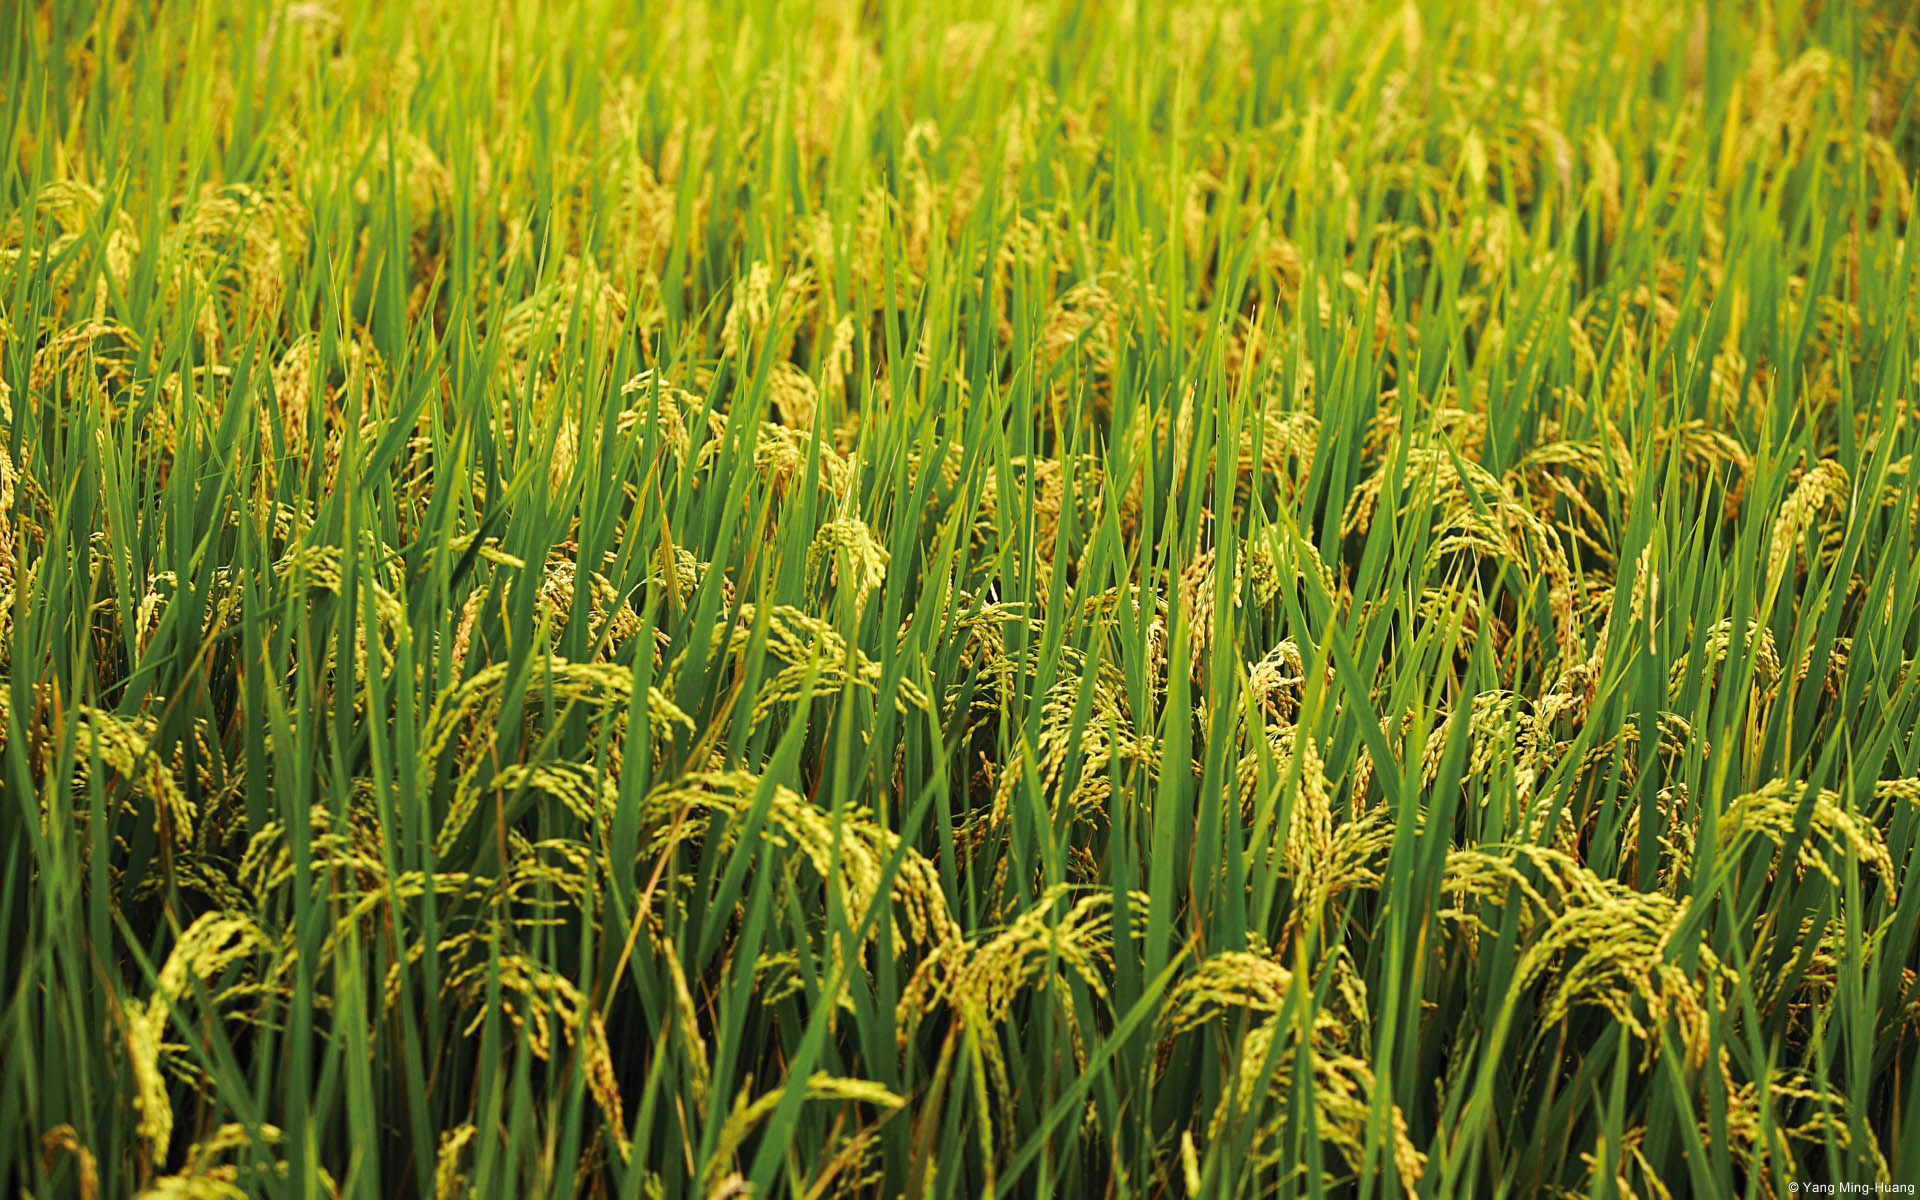 Like most other plants, rice is well equipped with an effective immune system that enables it to detect and fend off disease-causing microbes.